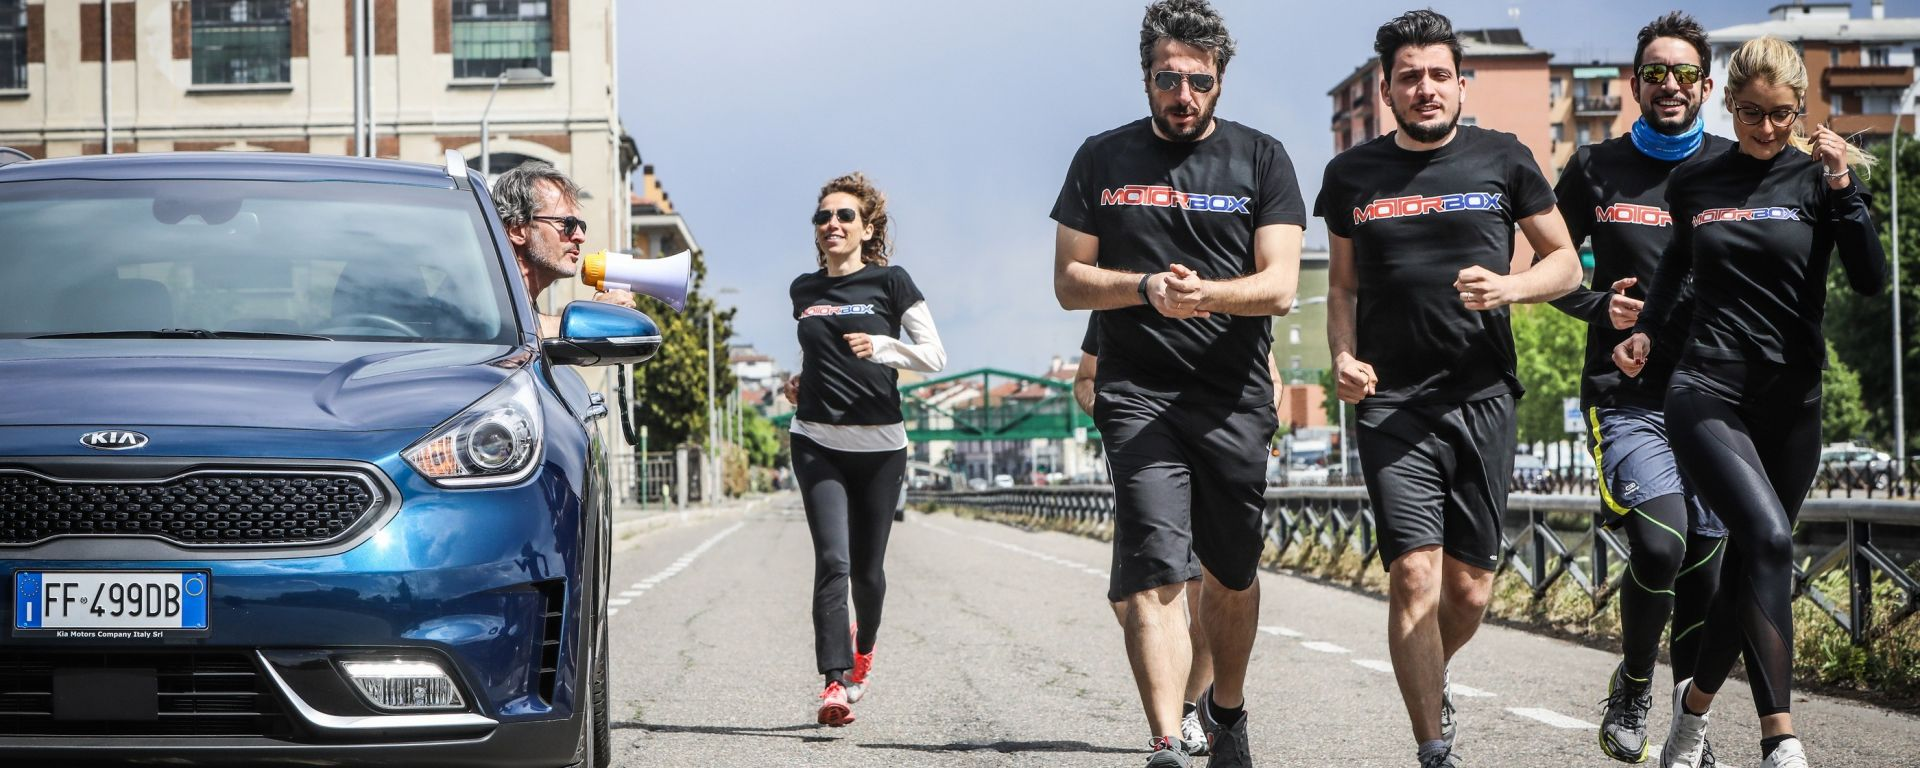 Kia Wings For Life: come si affronta una maratona?